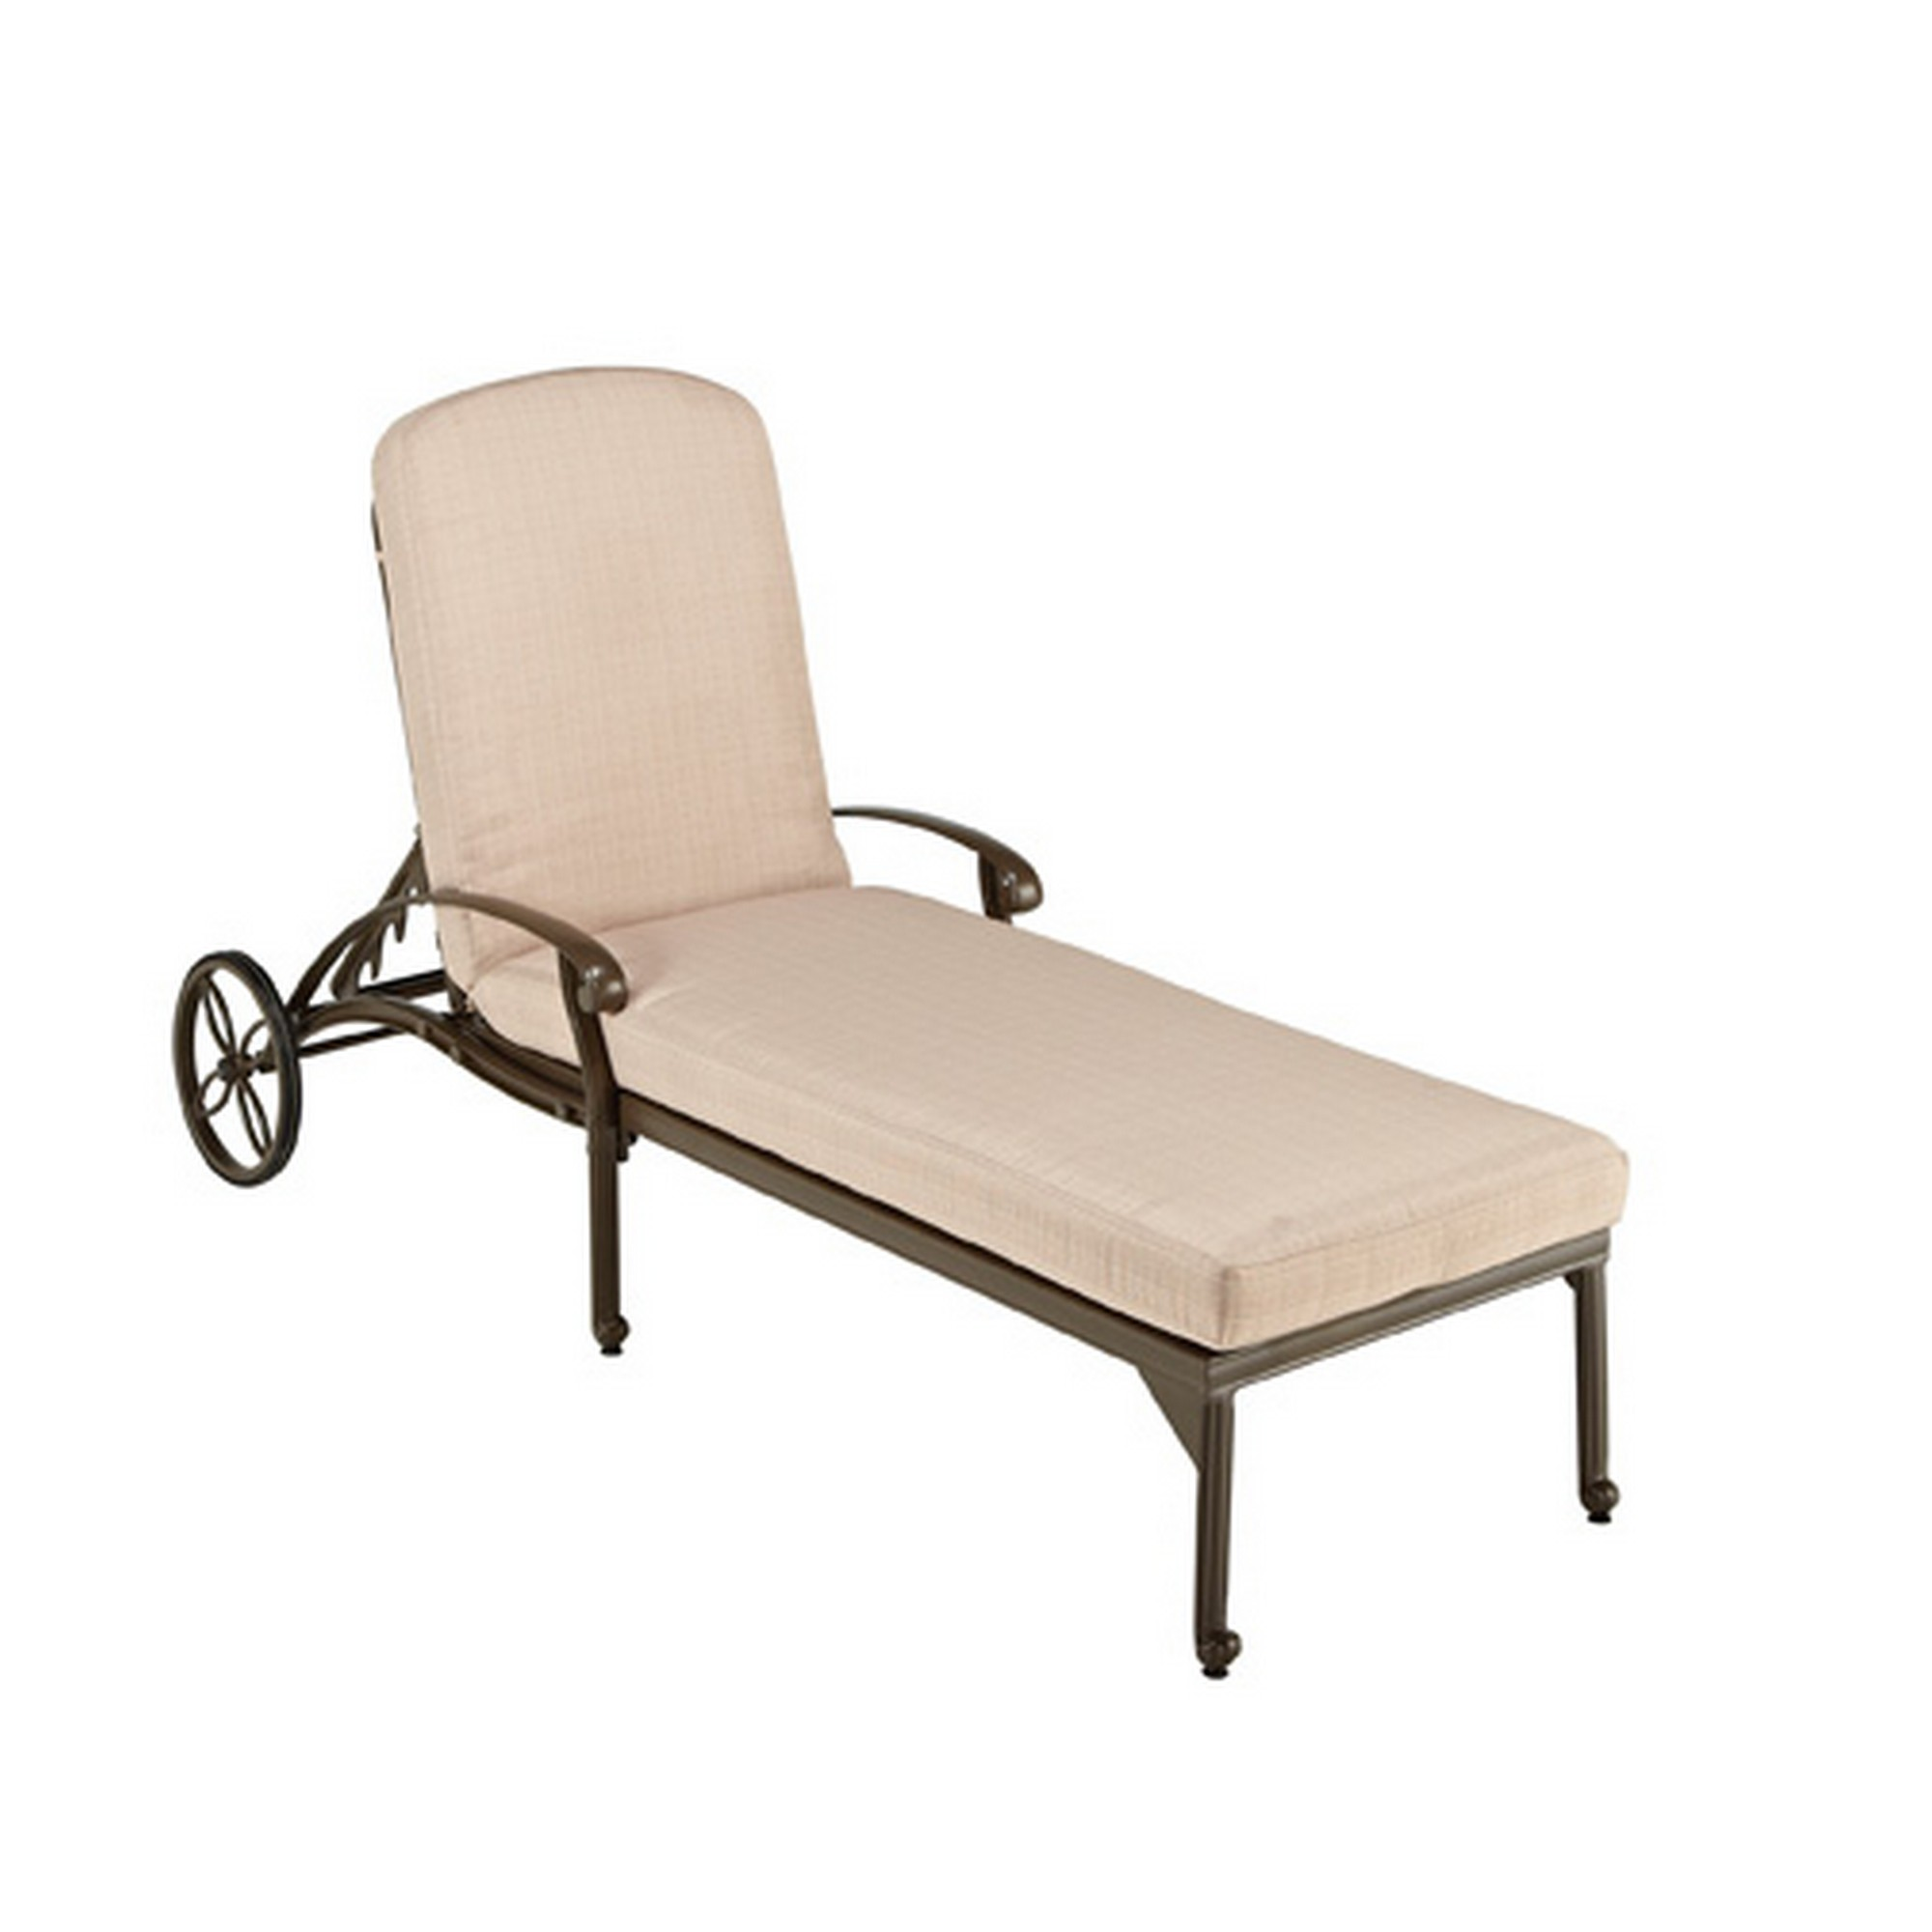 Capri Outdoor Chaise Lounge by homestyles at Sam Levitz Furniture